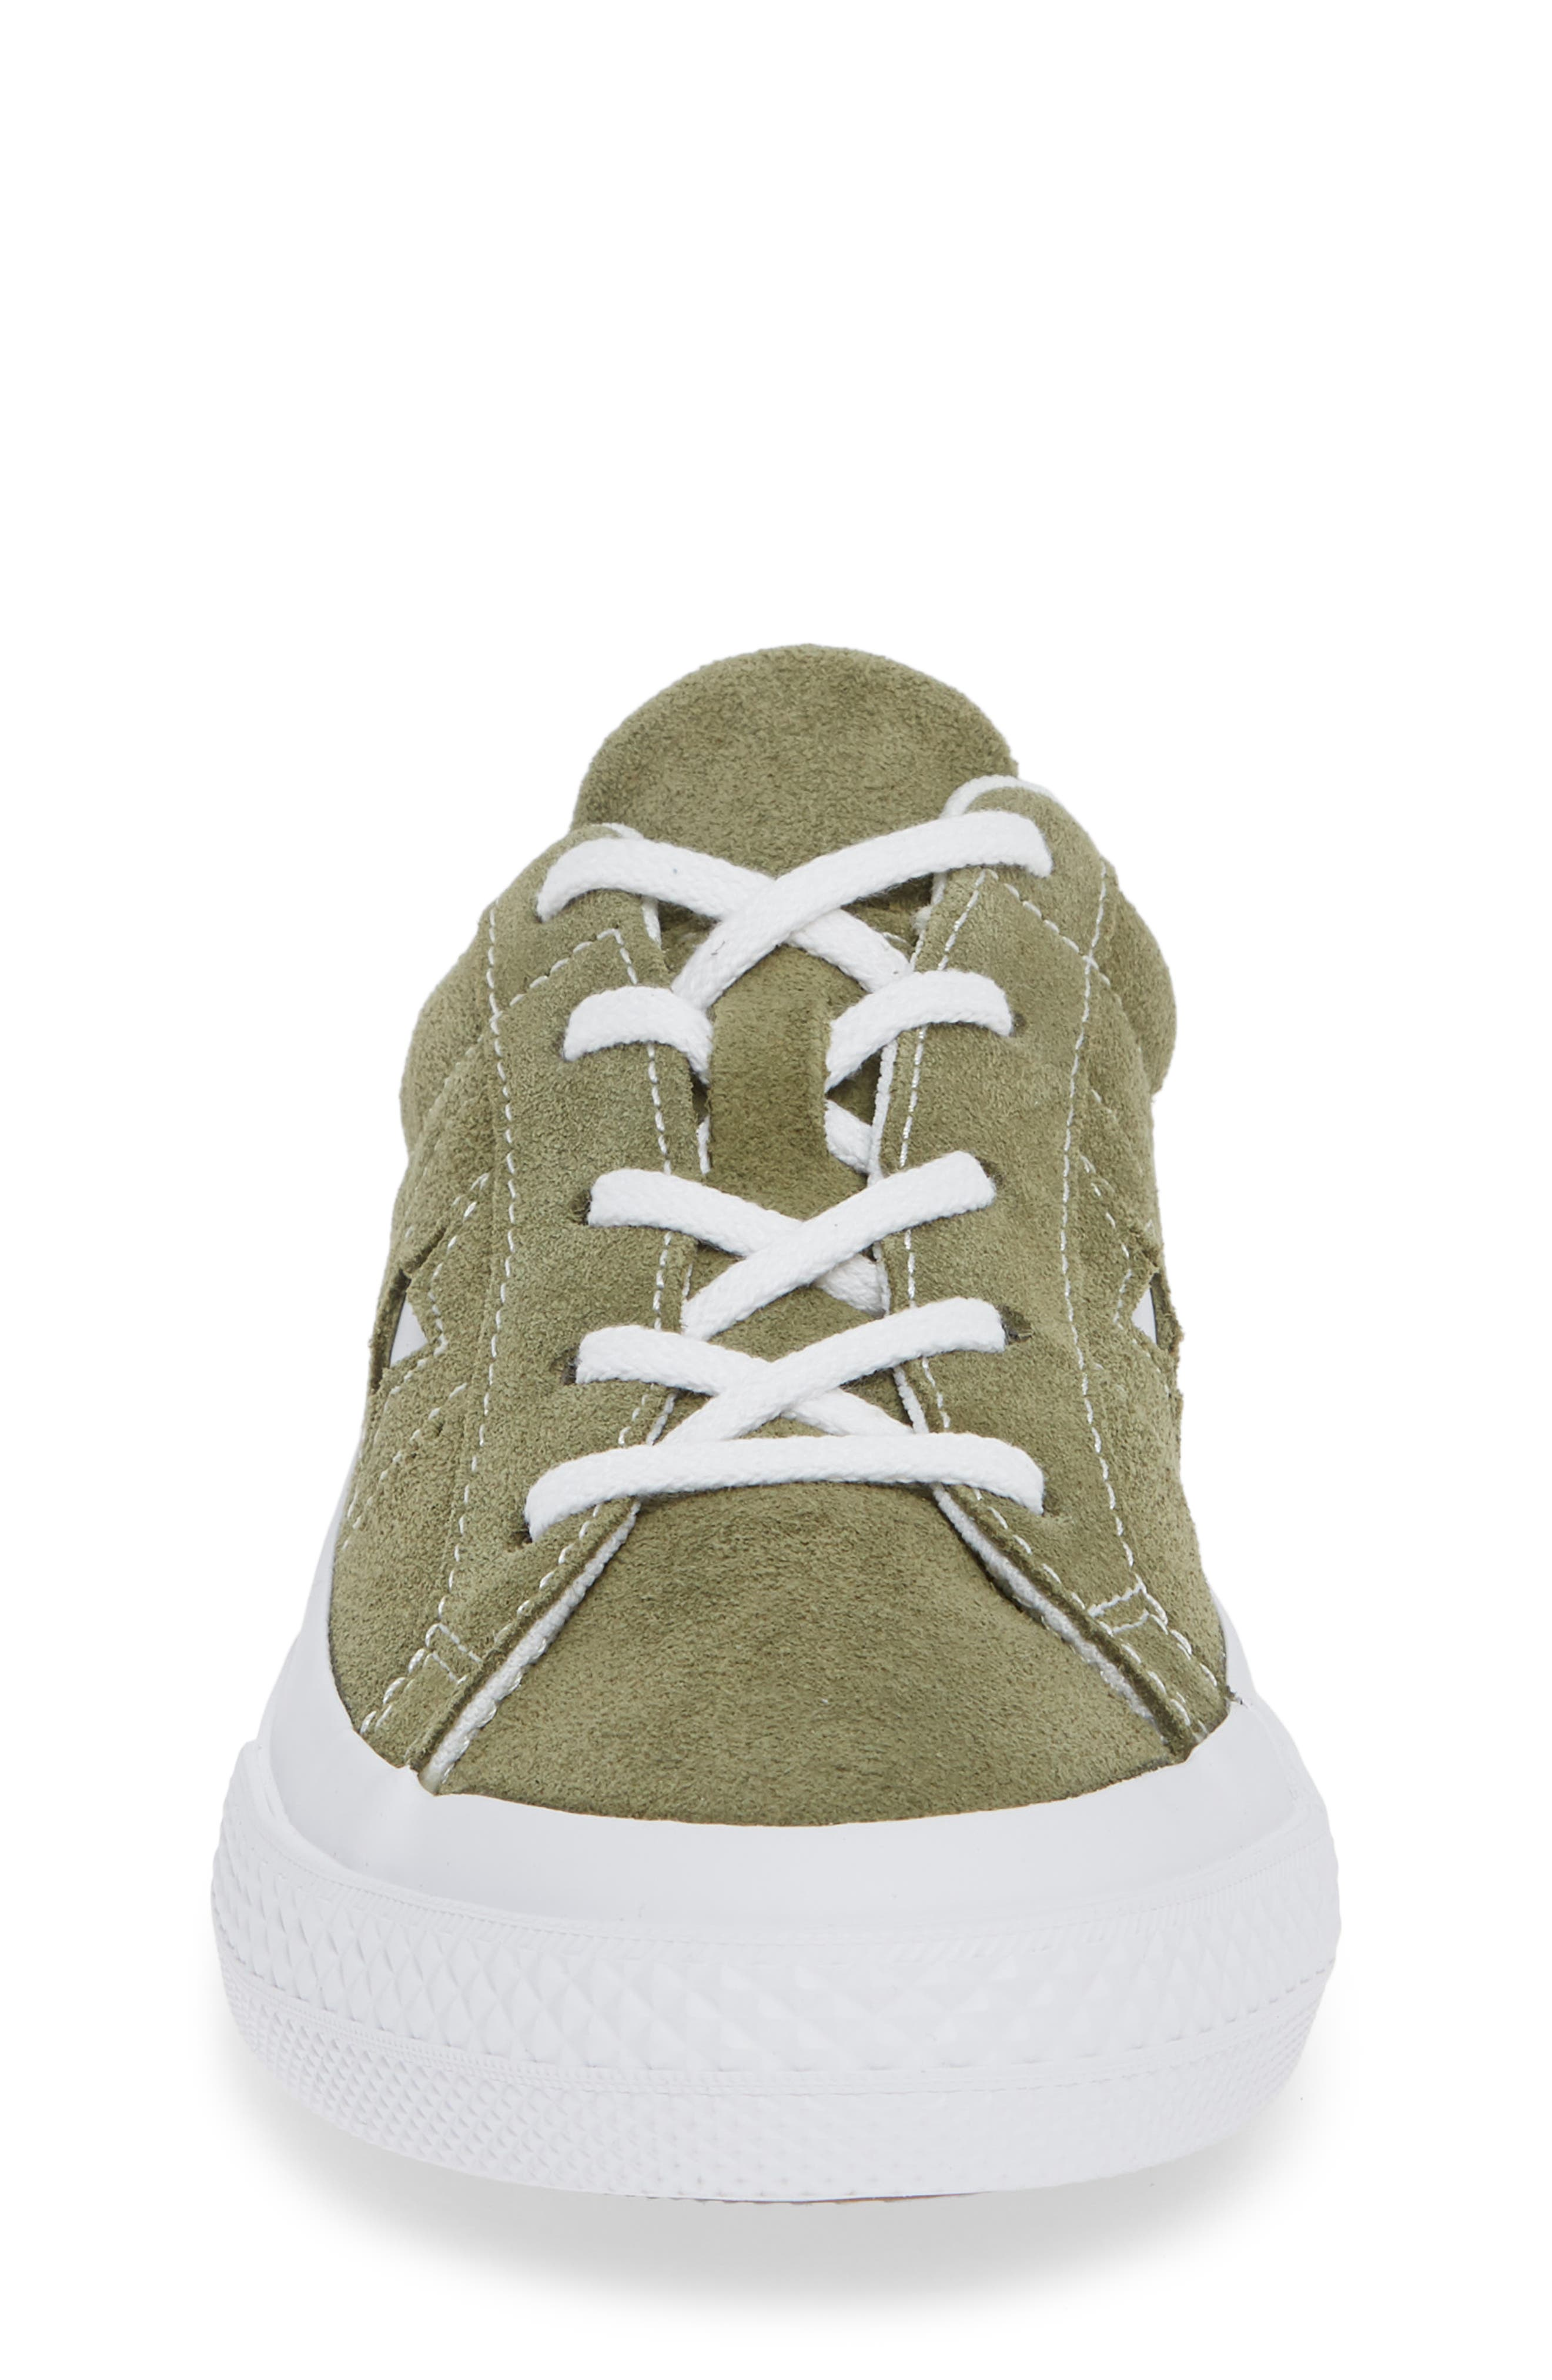 One Star Vintage Suede Low Top Sneaker,                             Alternate thumbnail 4, color,                             322